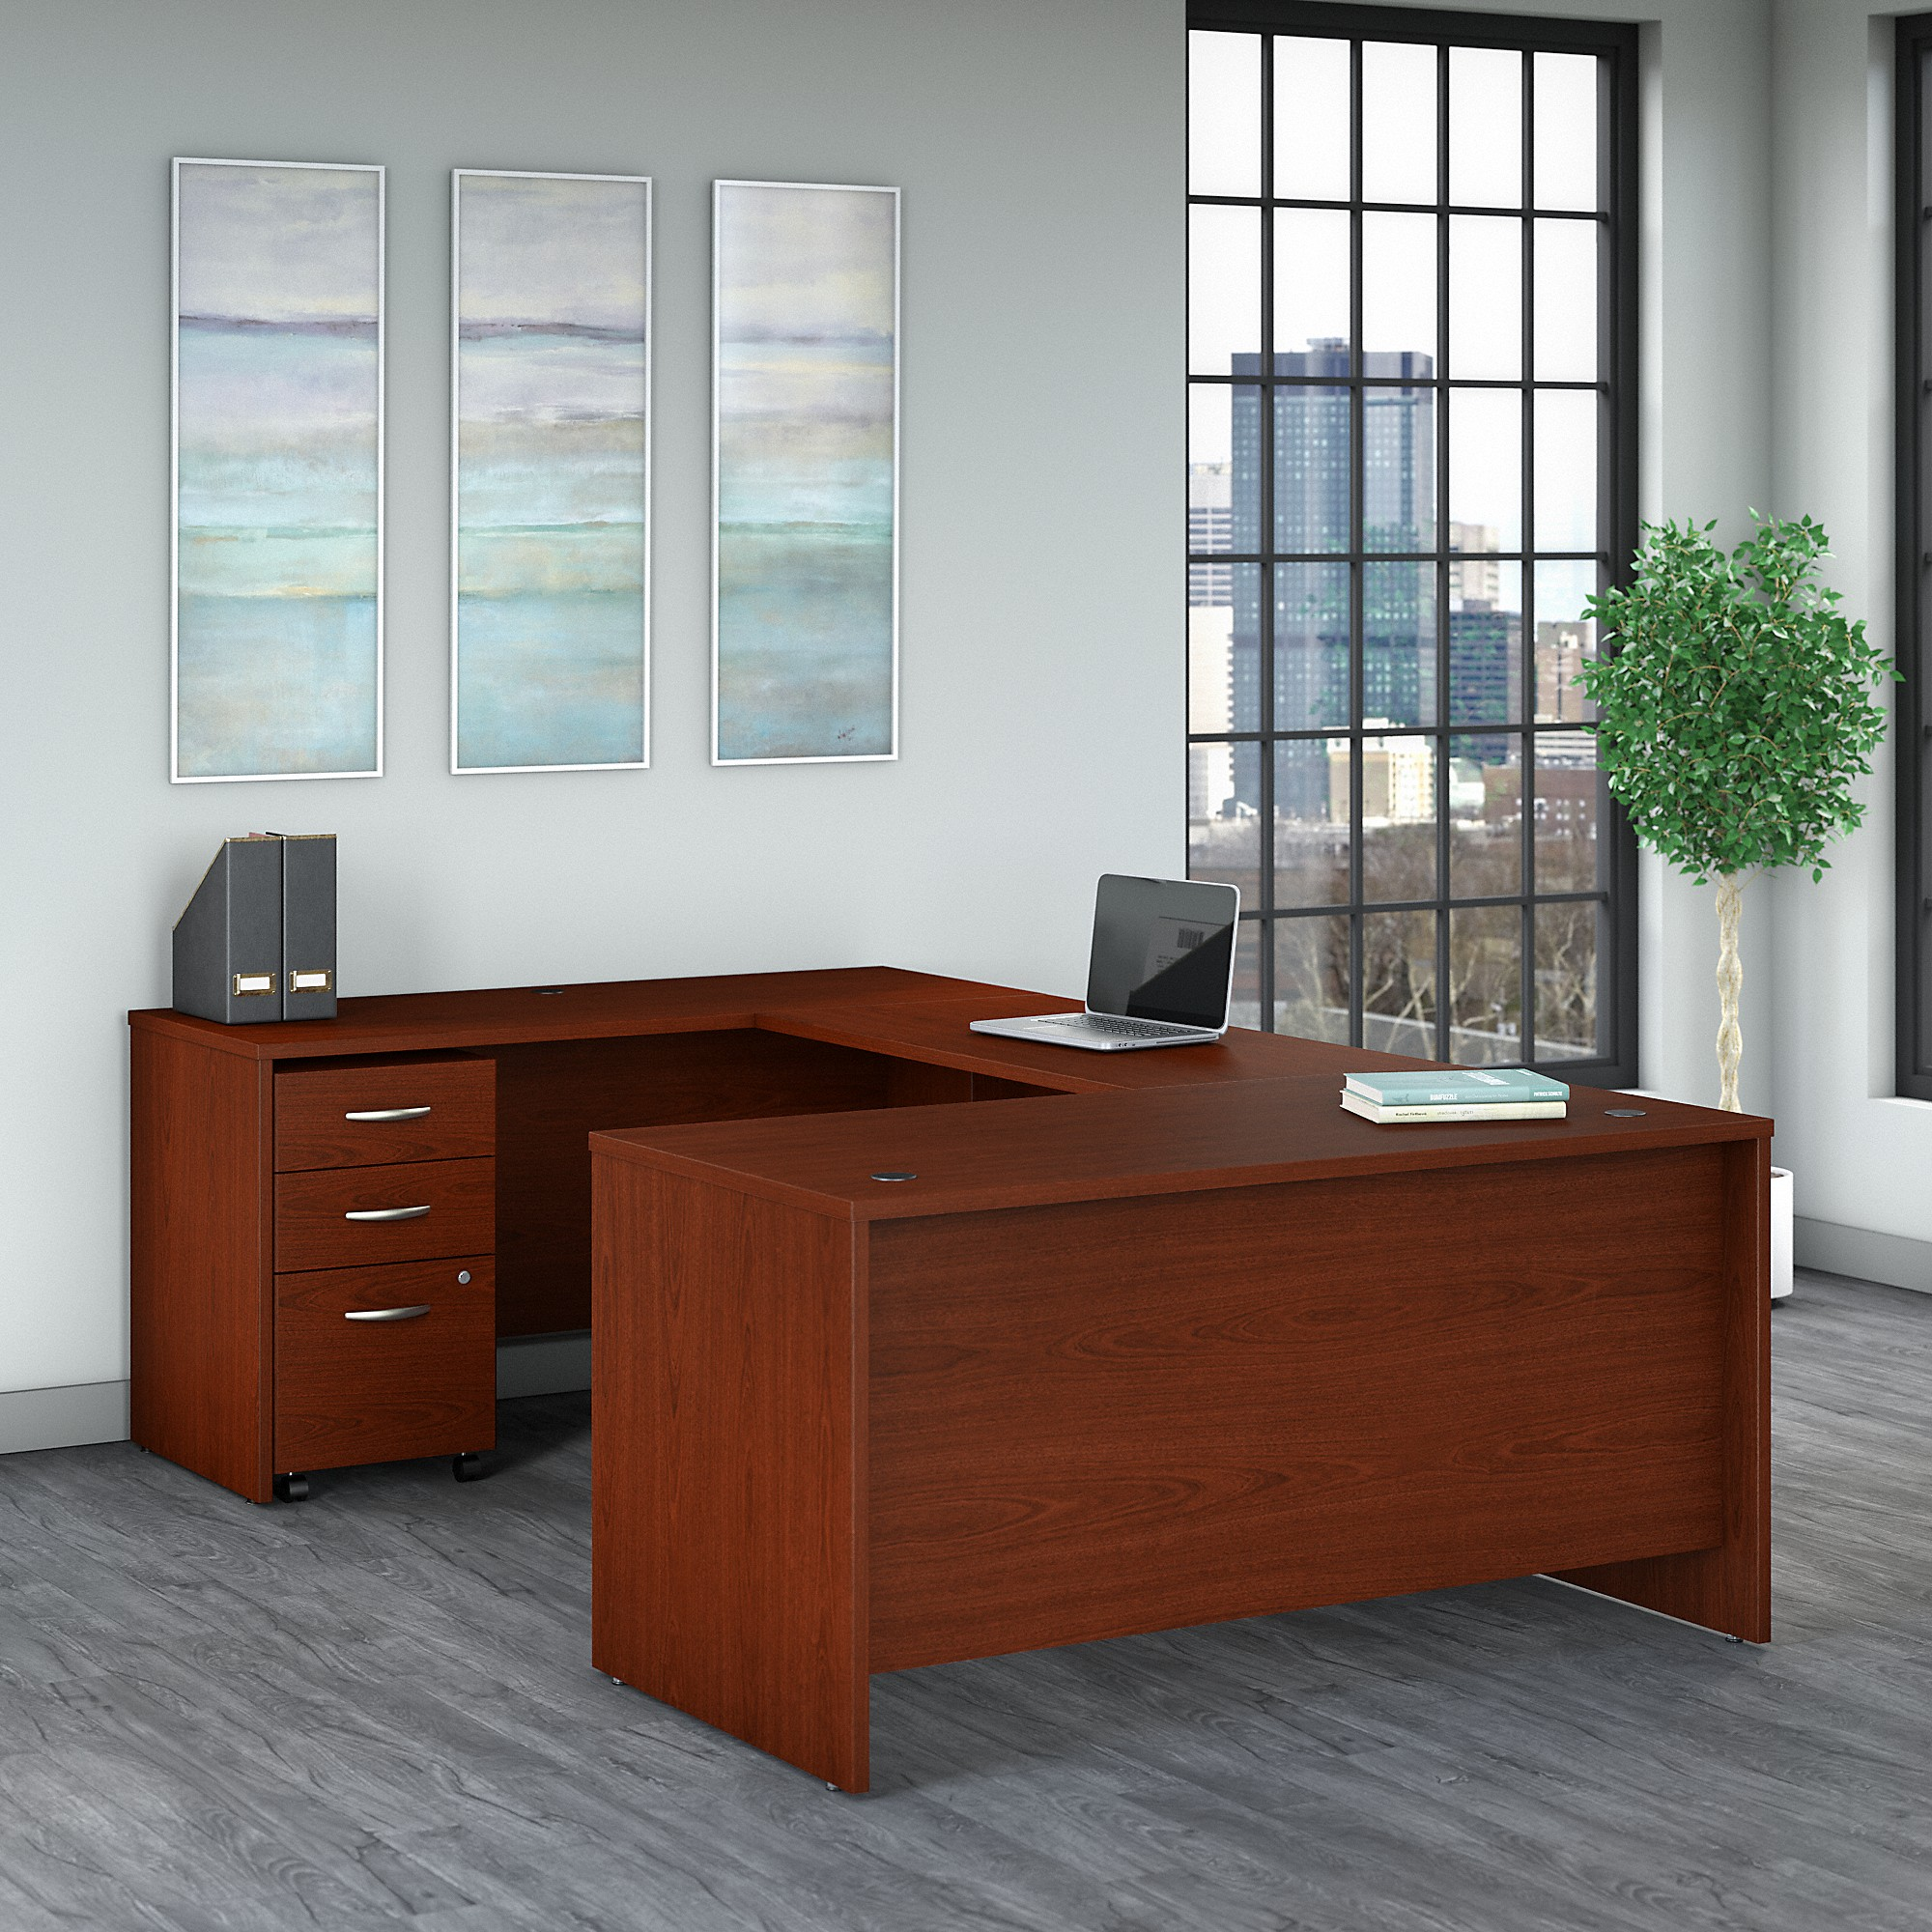 Bush Business Furniture Series C 60W U Shaped Desk with 3 Drawer Mobile File Cabinet